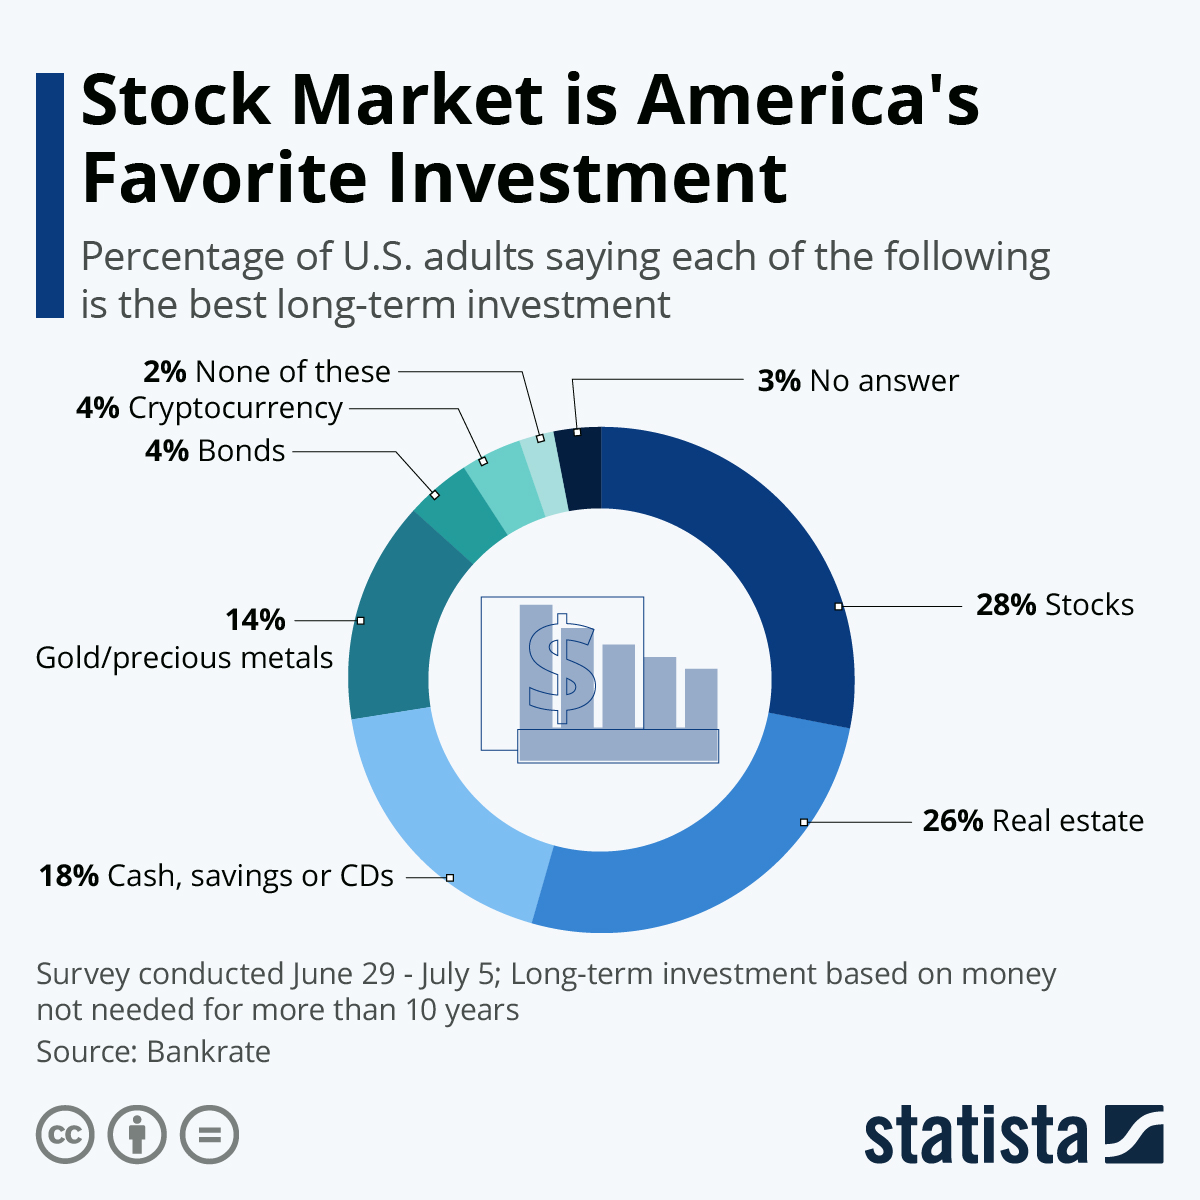 Stock Market is America's Favorite Investment # Infographic